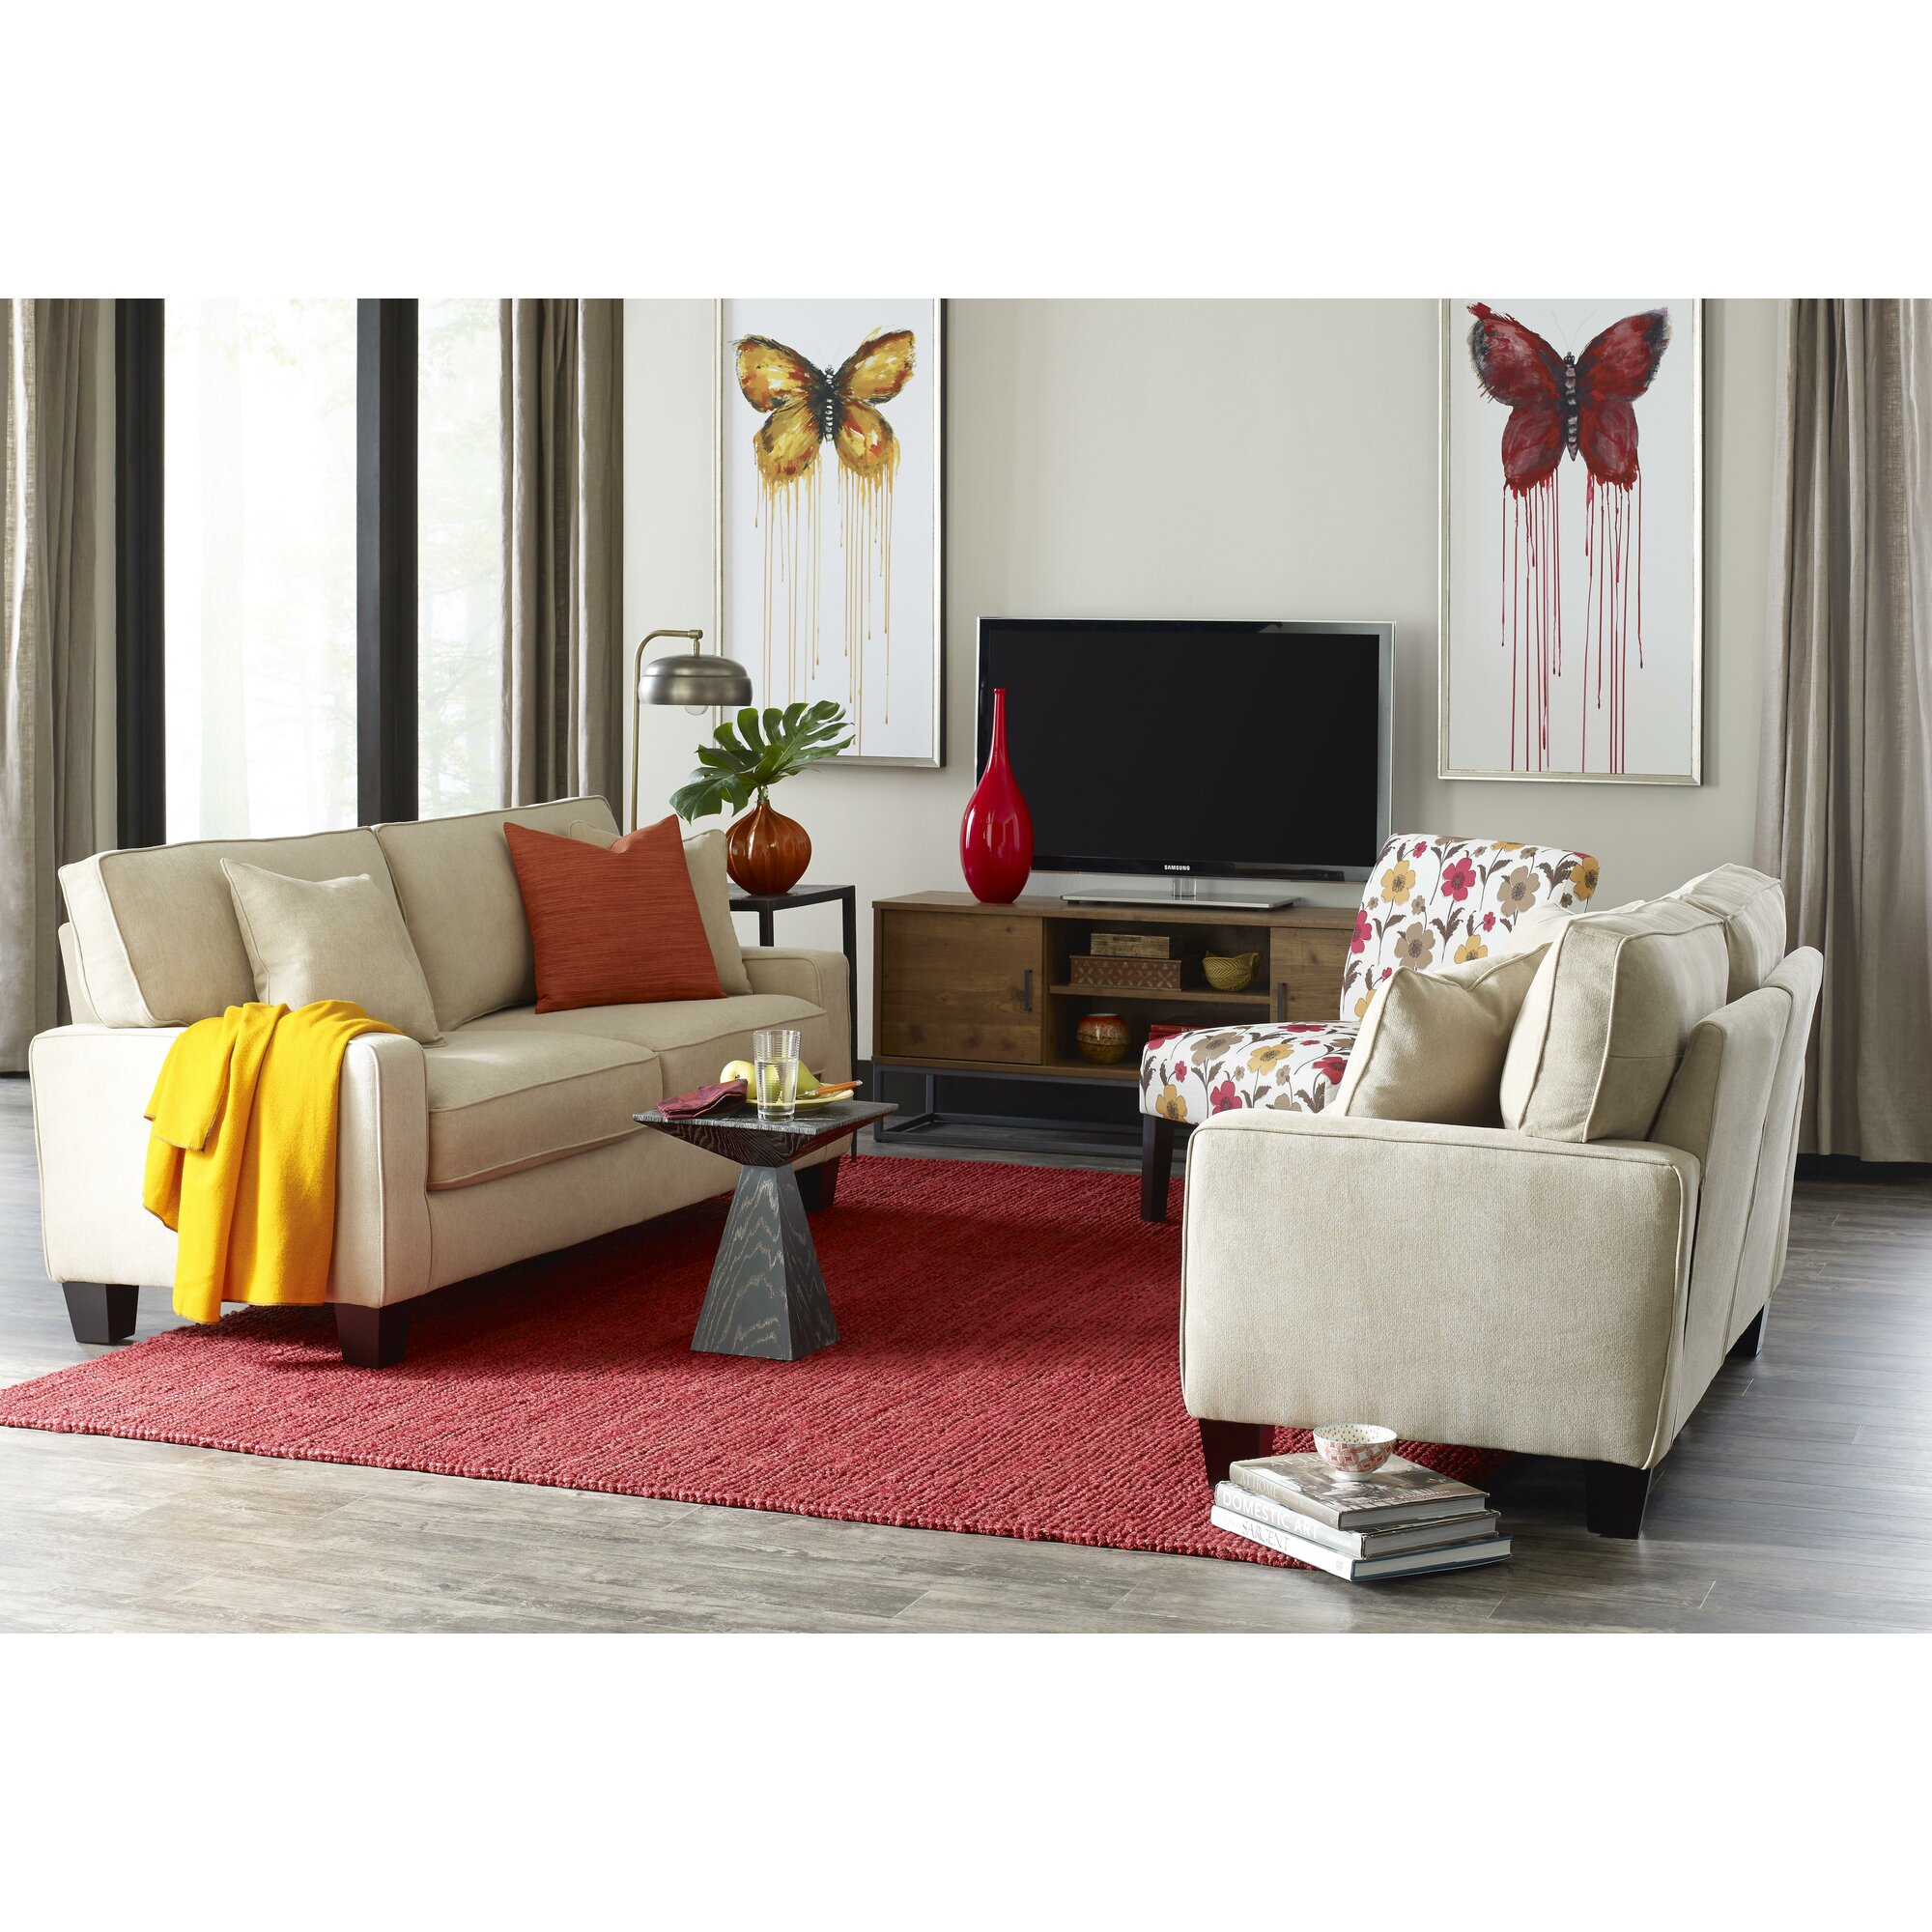 Serta At Home Palisades Living Room Collection